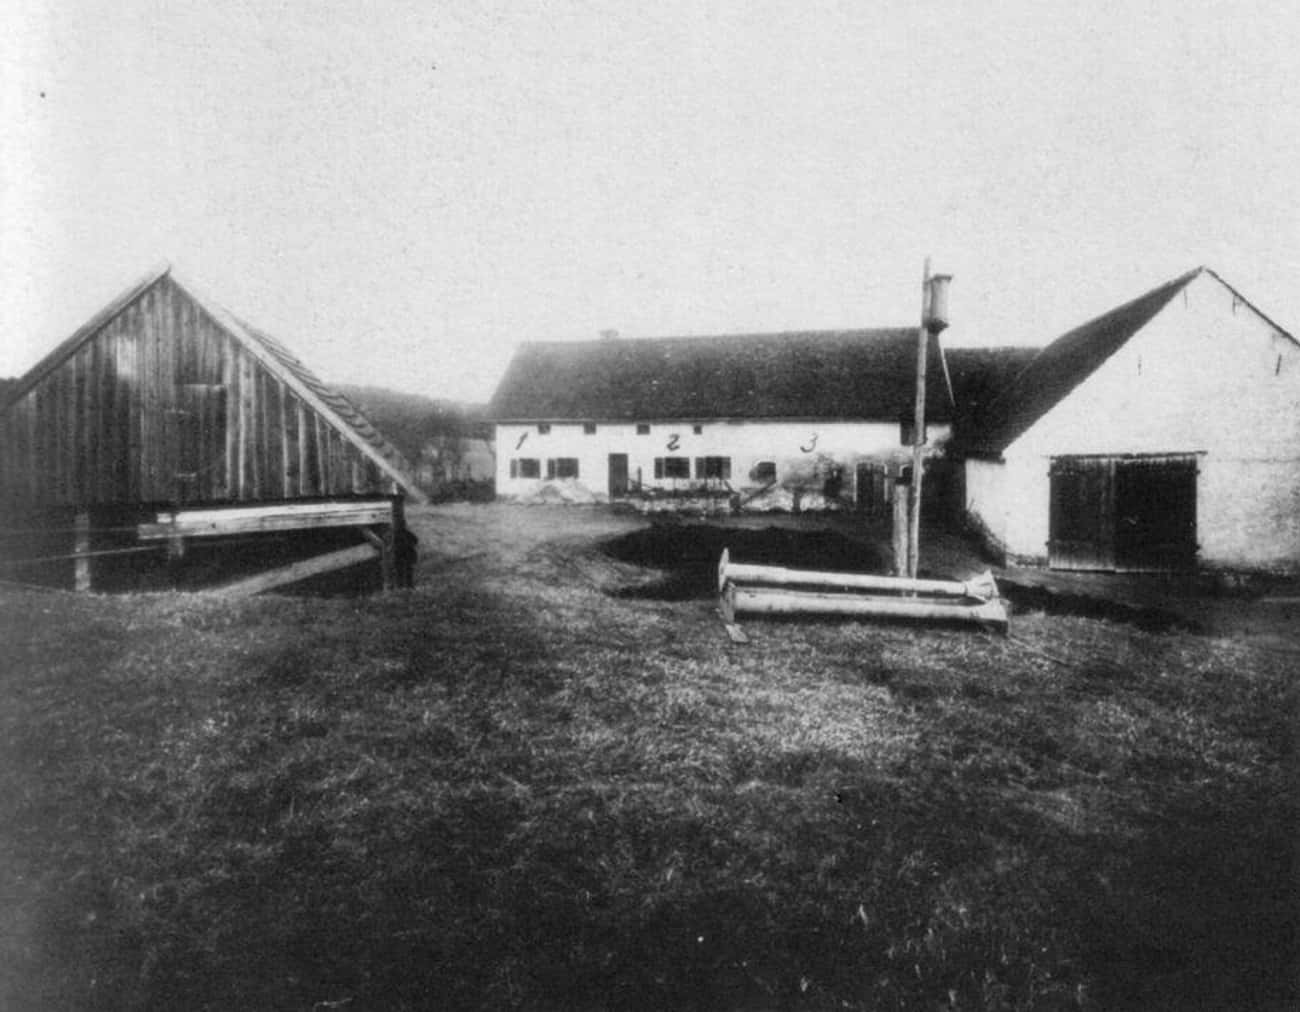 The Victims Were Probably Lure is listed (or ranked) 2 on the list 11 Disturbing Facts About The Unsolved Hinterkaifeck Murders